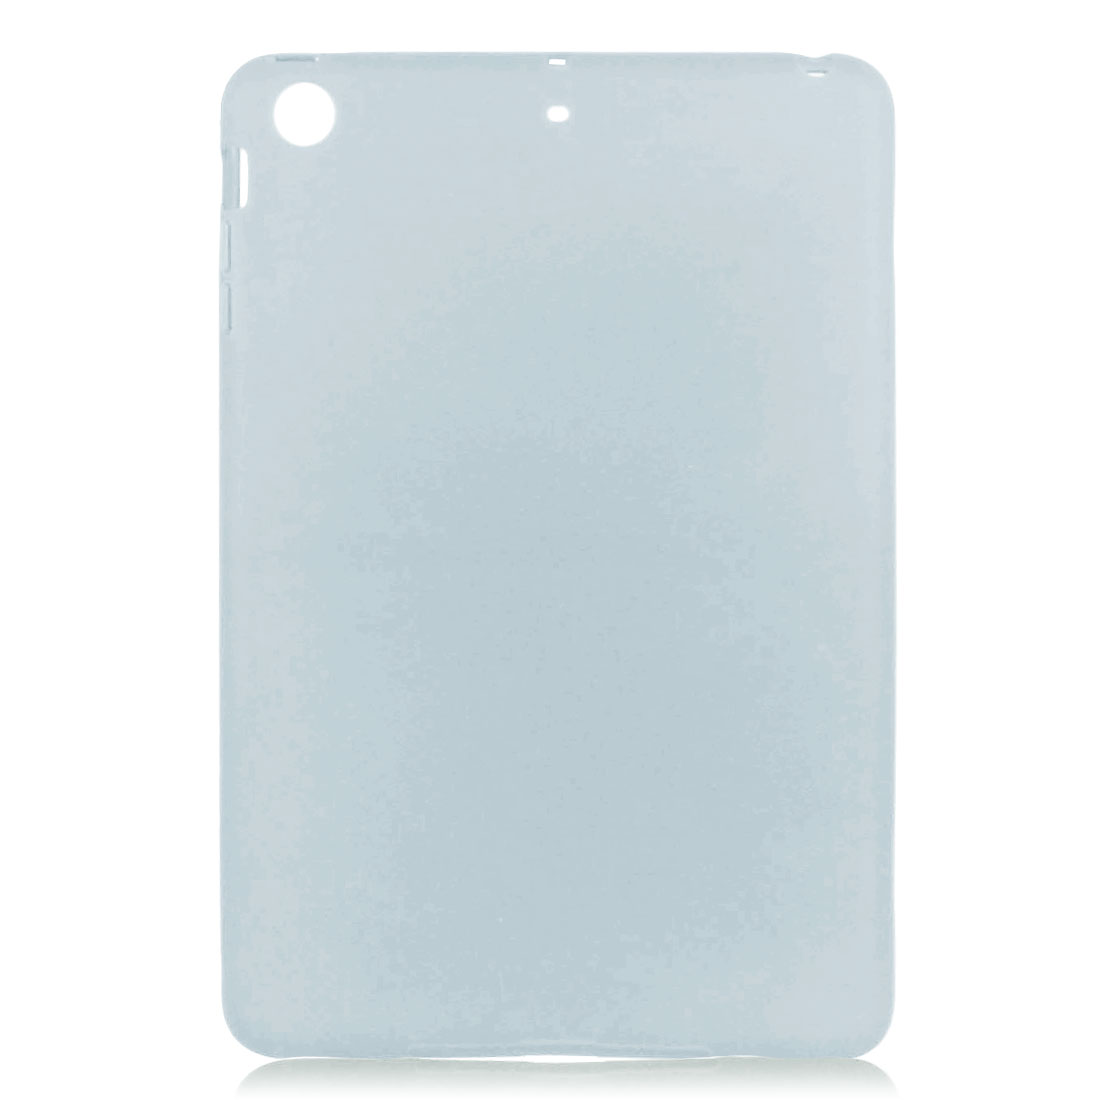 Light Gray Soft Plastic Case Cover Protector for Apple iPad Mini